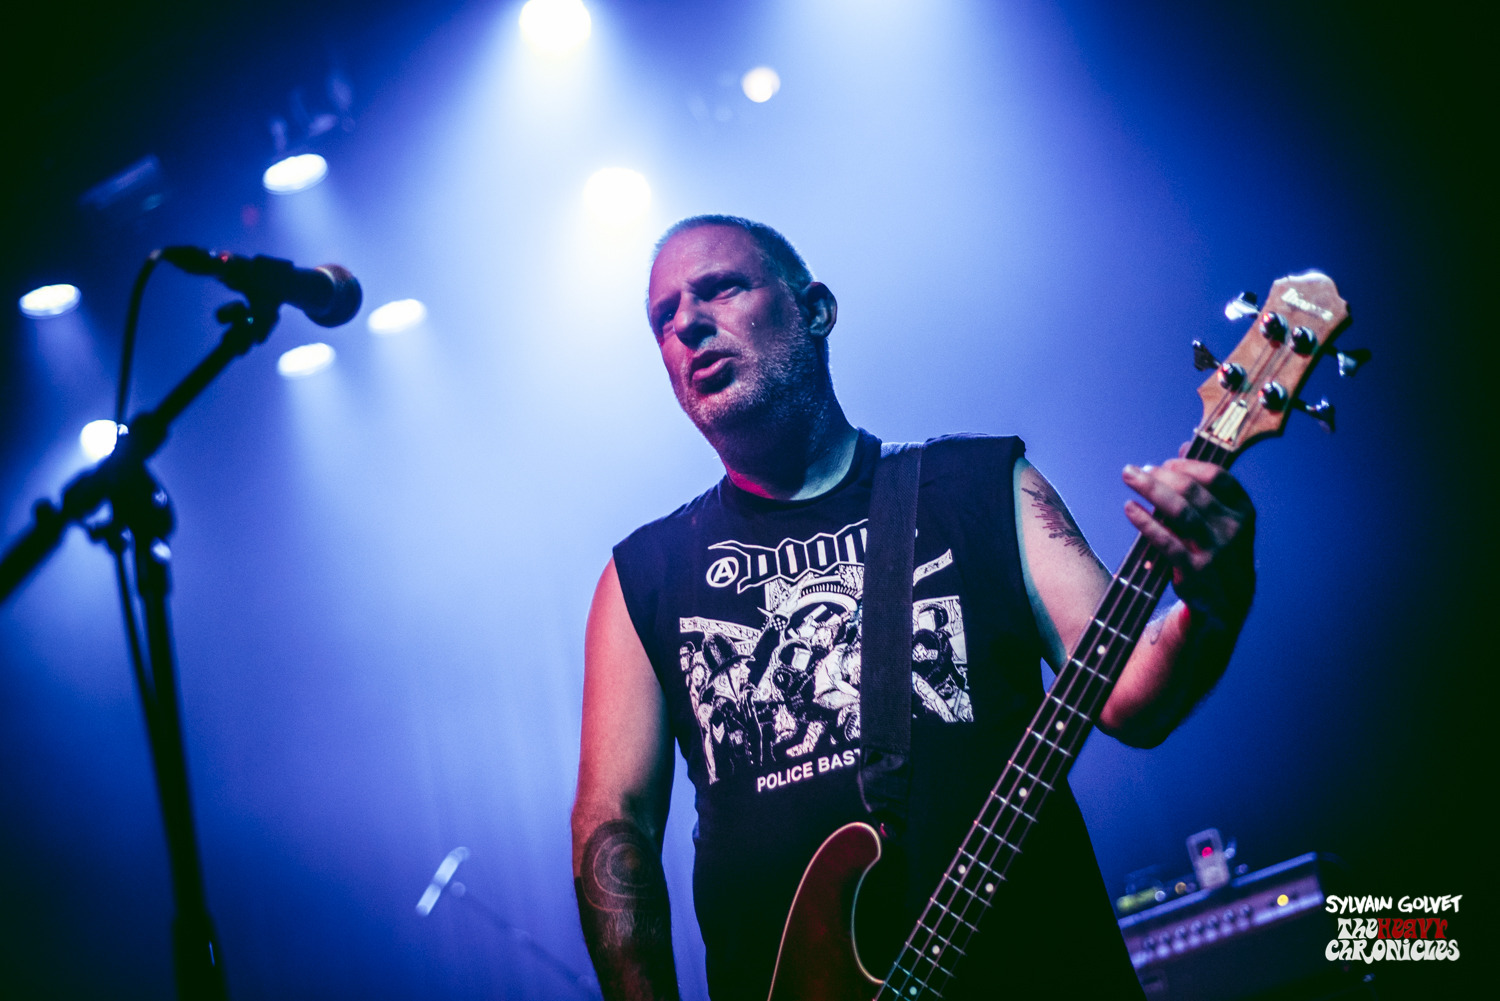 NEUROSIS-BATACLAN-THE-HEAVY-CHRONICLES-180719-19